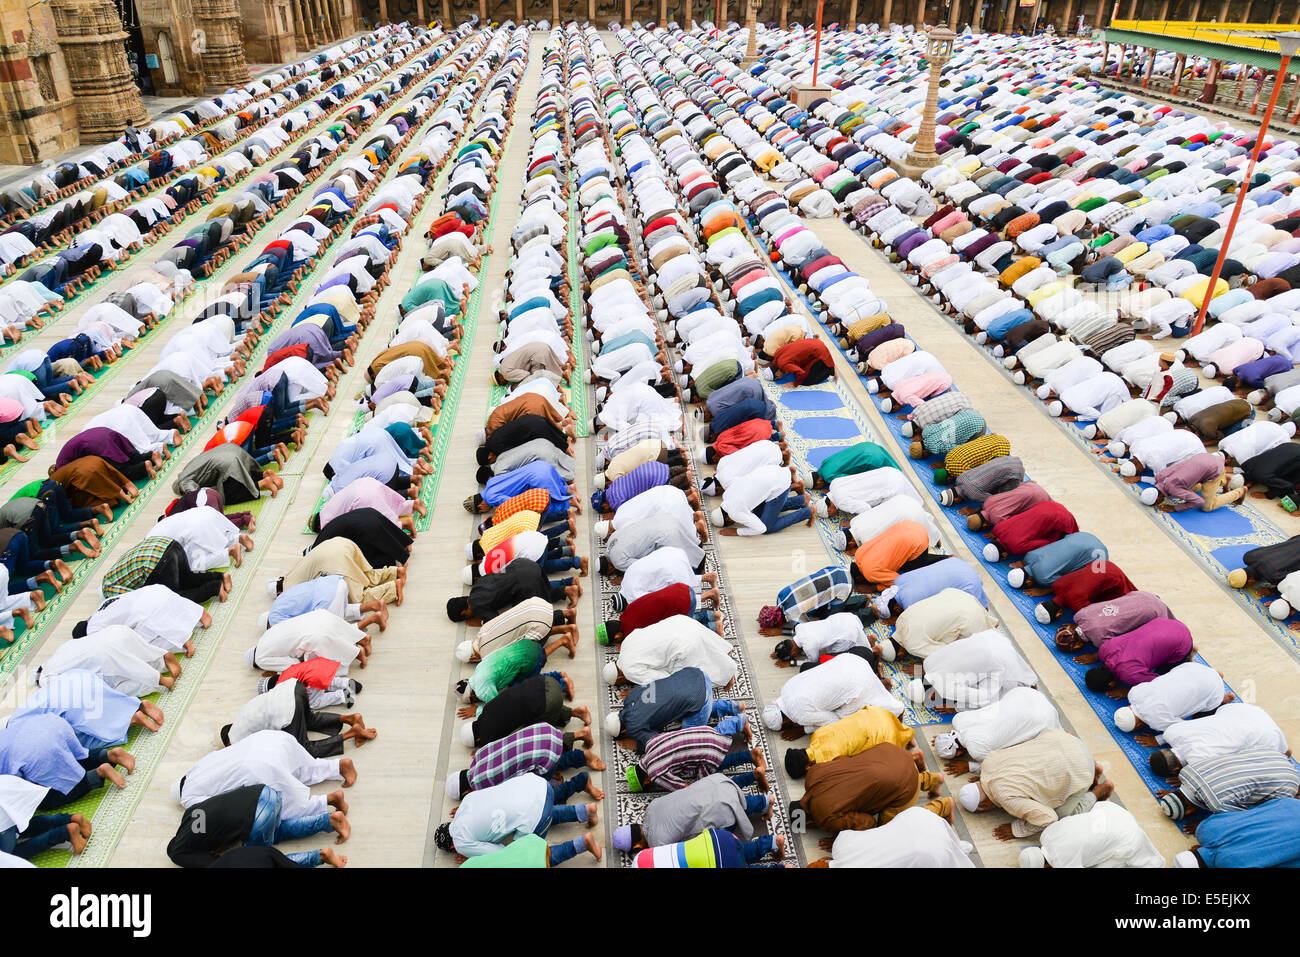 Ahmedabad, India. 29th July, 2014.  Muslims celebrating Eid al-Fitr which marks the end of the month of Ramadan, Stock Photo